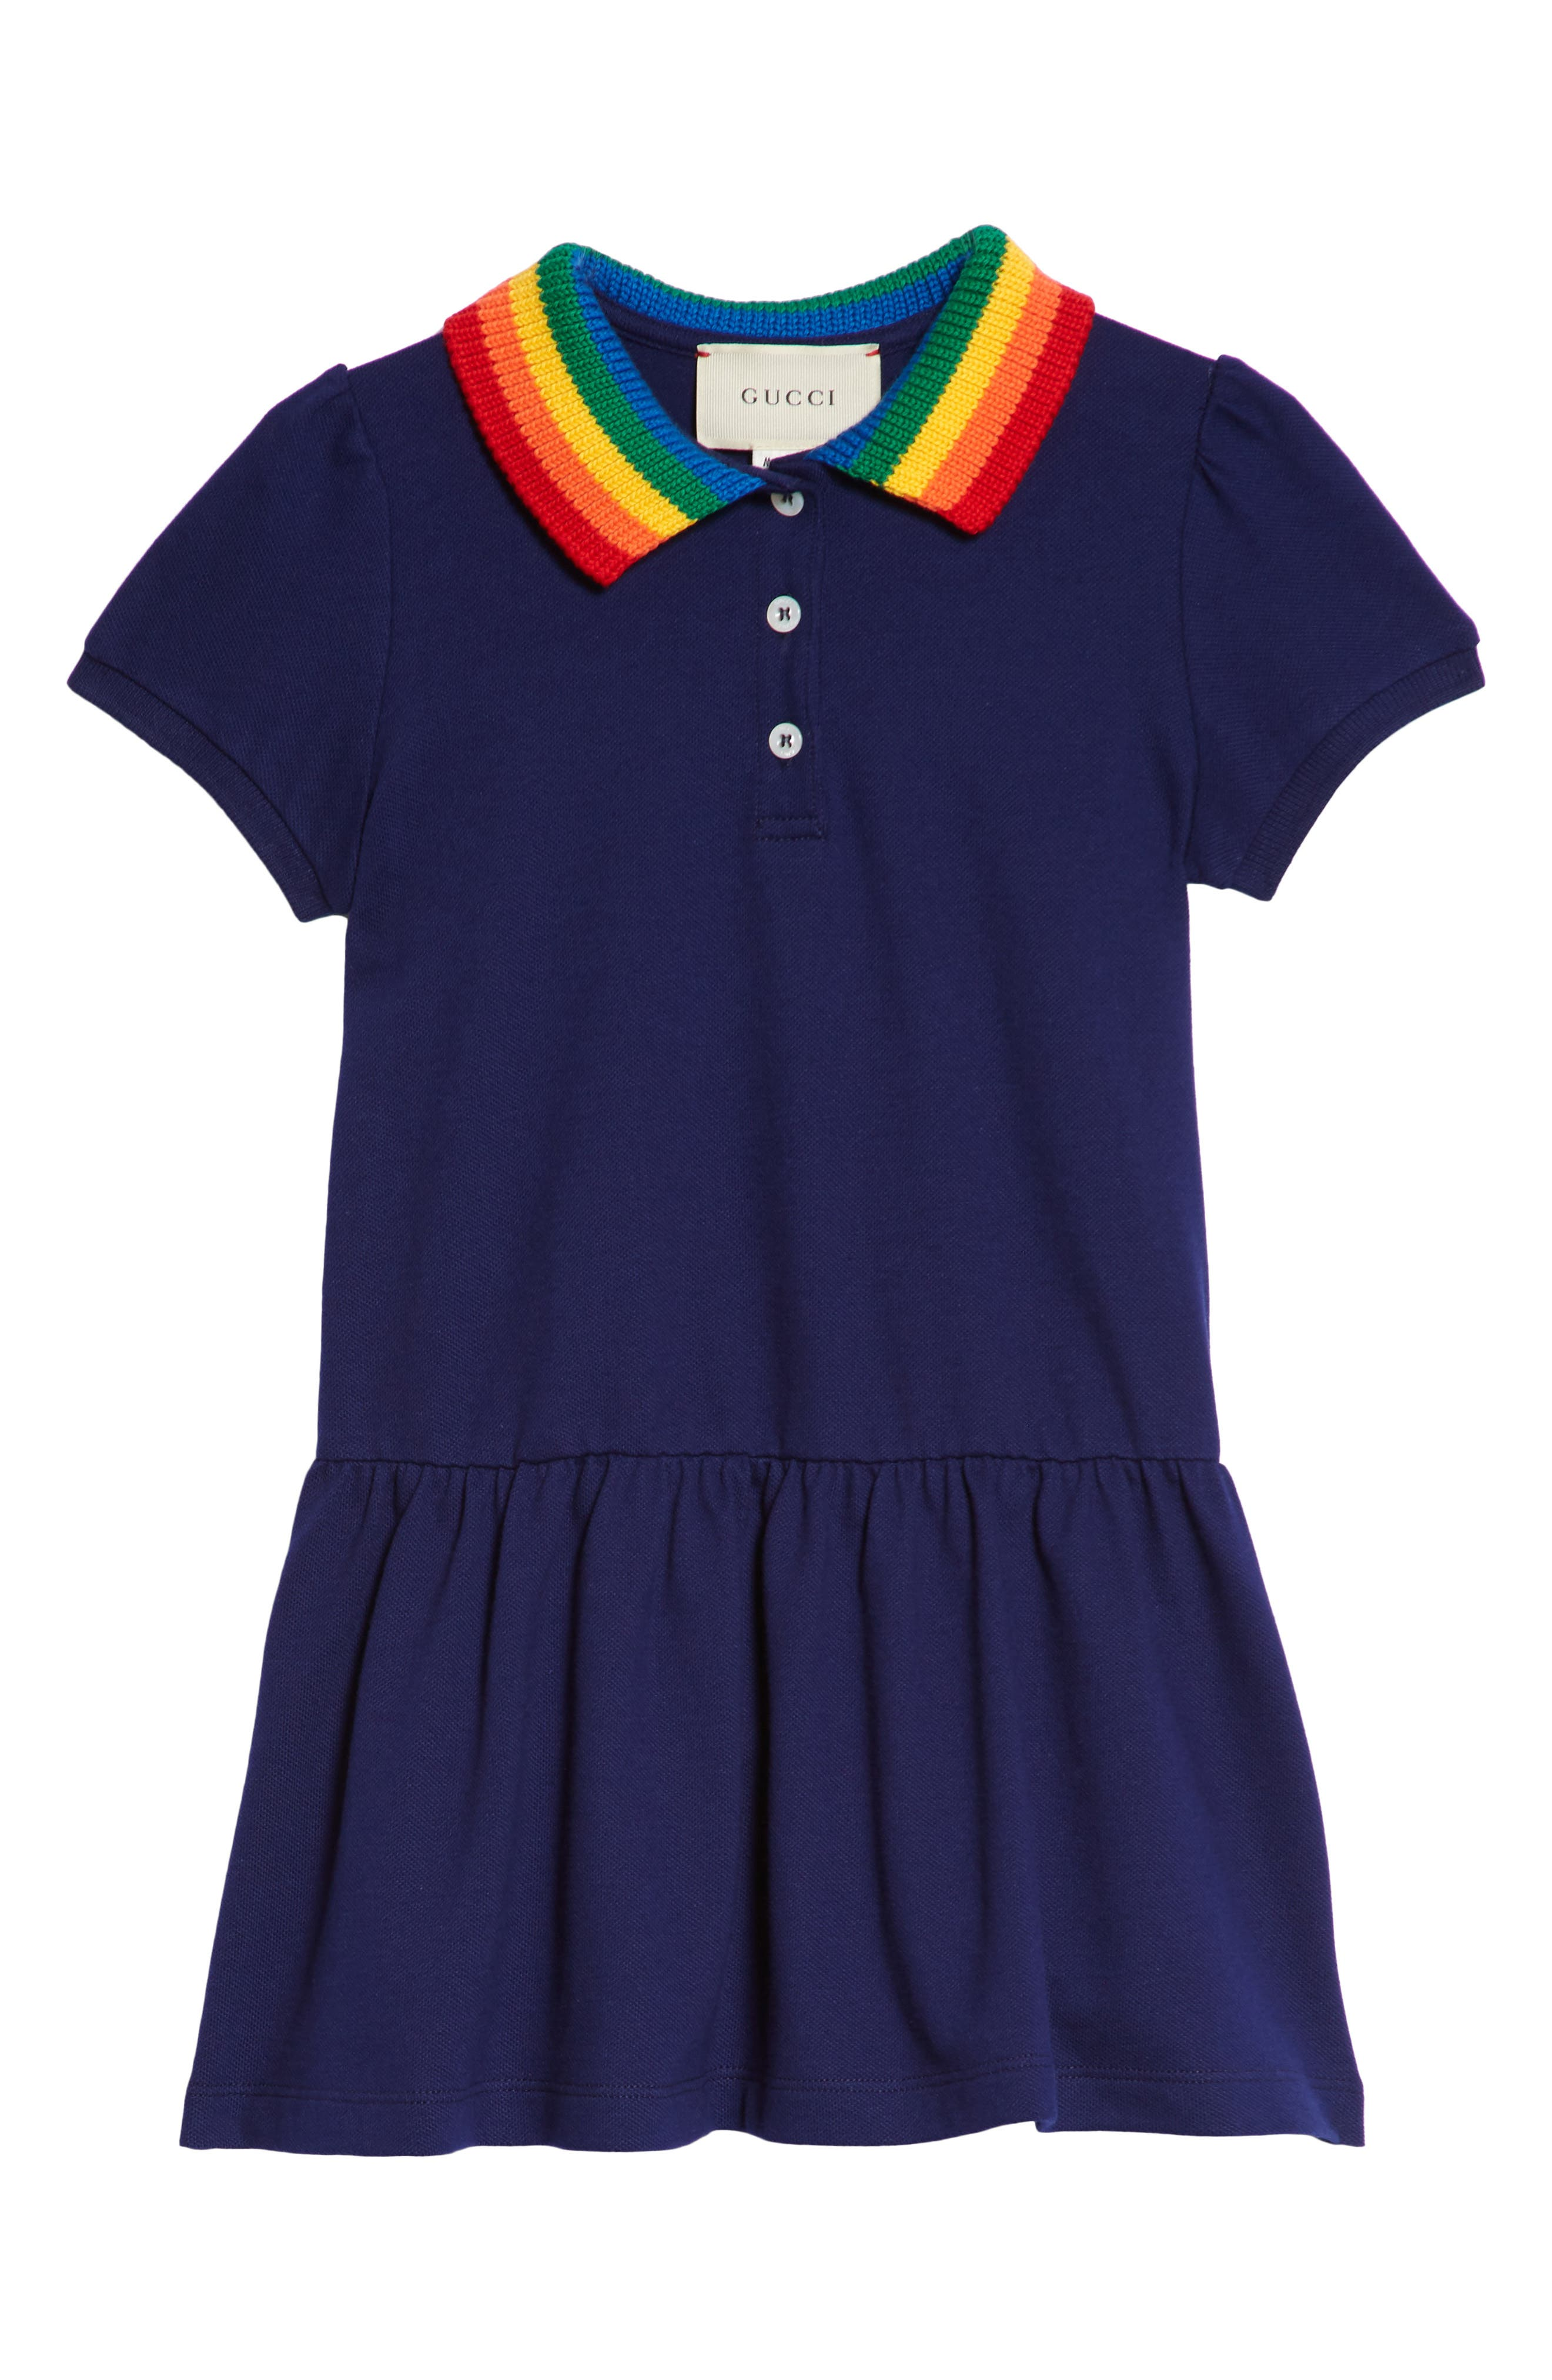 Alternate Image 1 Selected - Gucci Polo Dress (Little Girls & Big Girls)